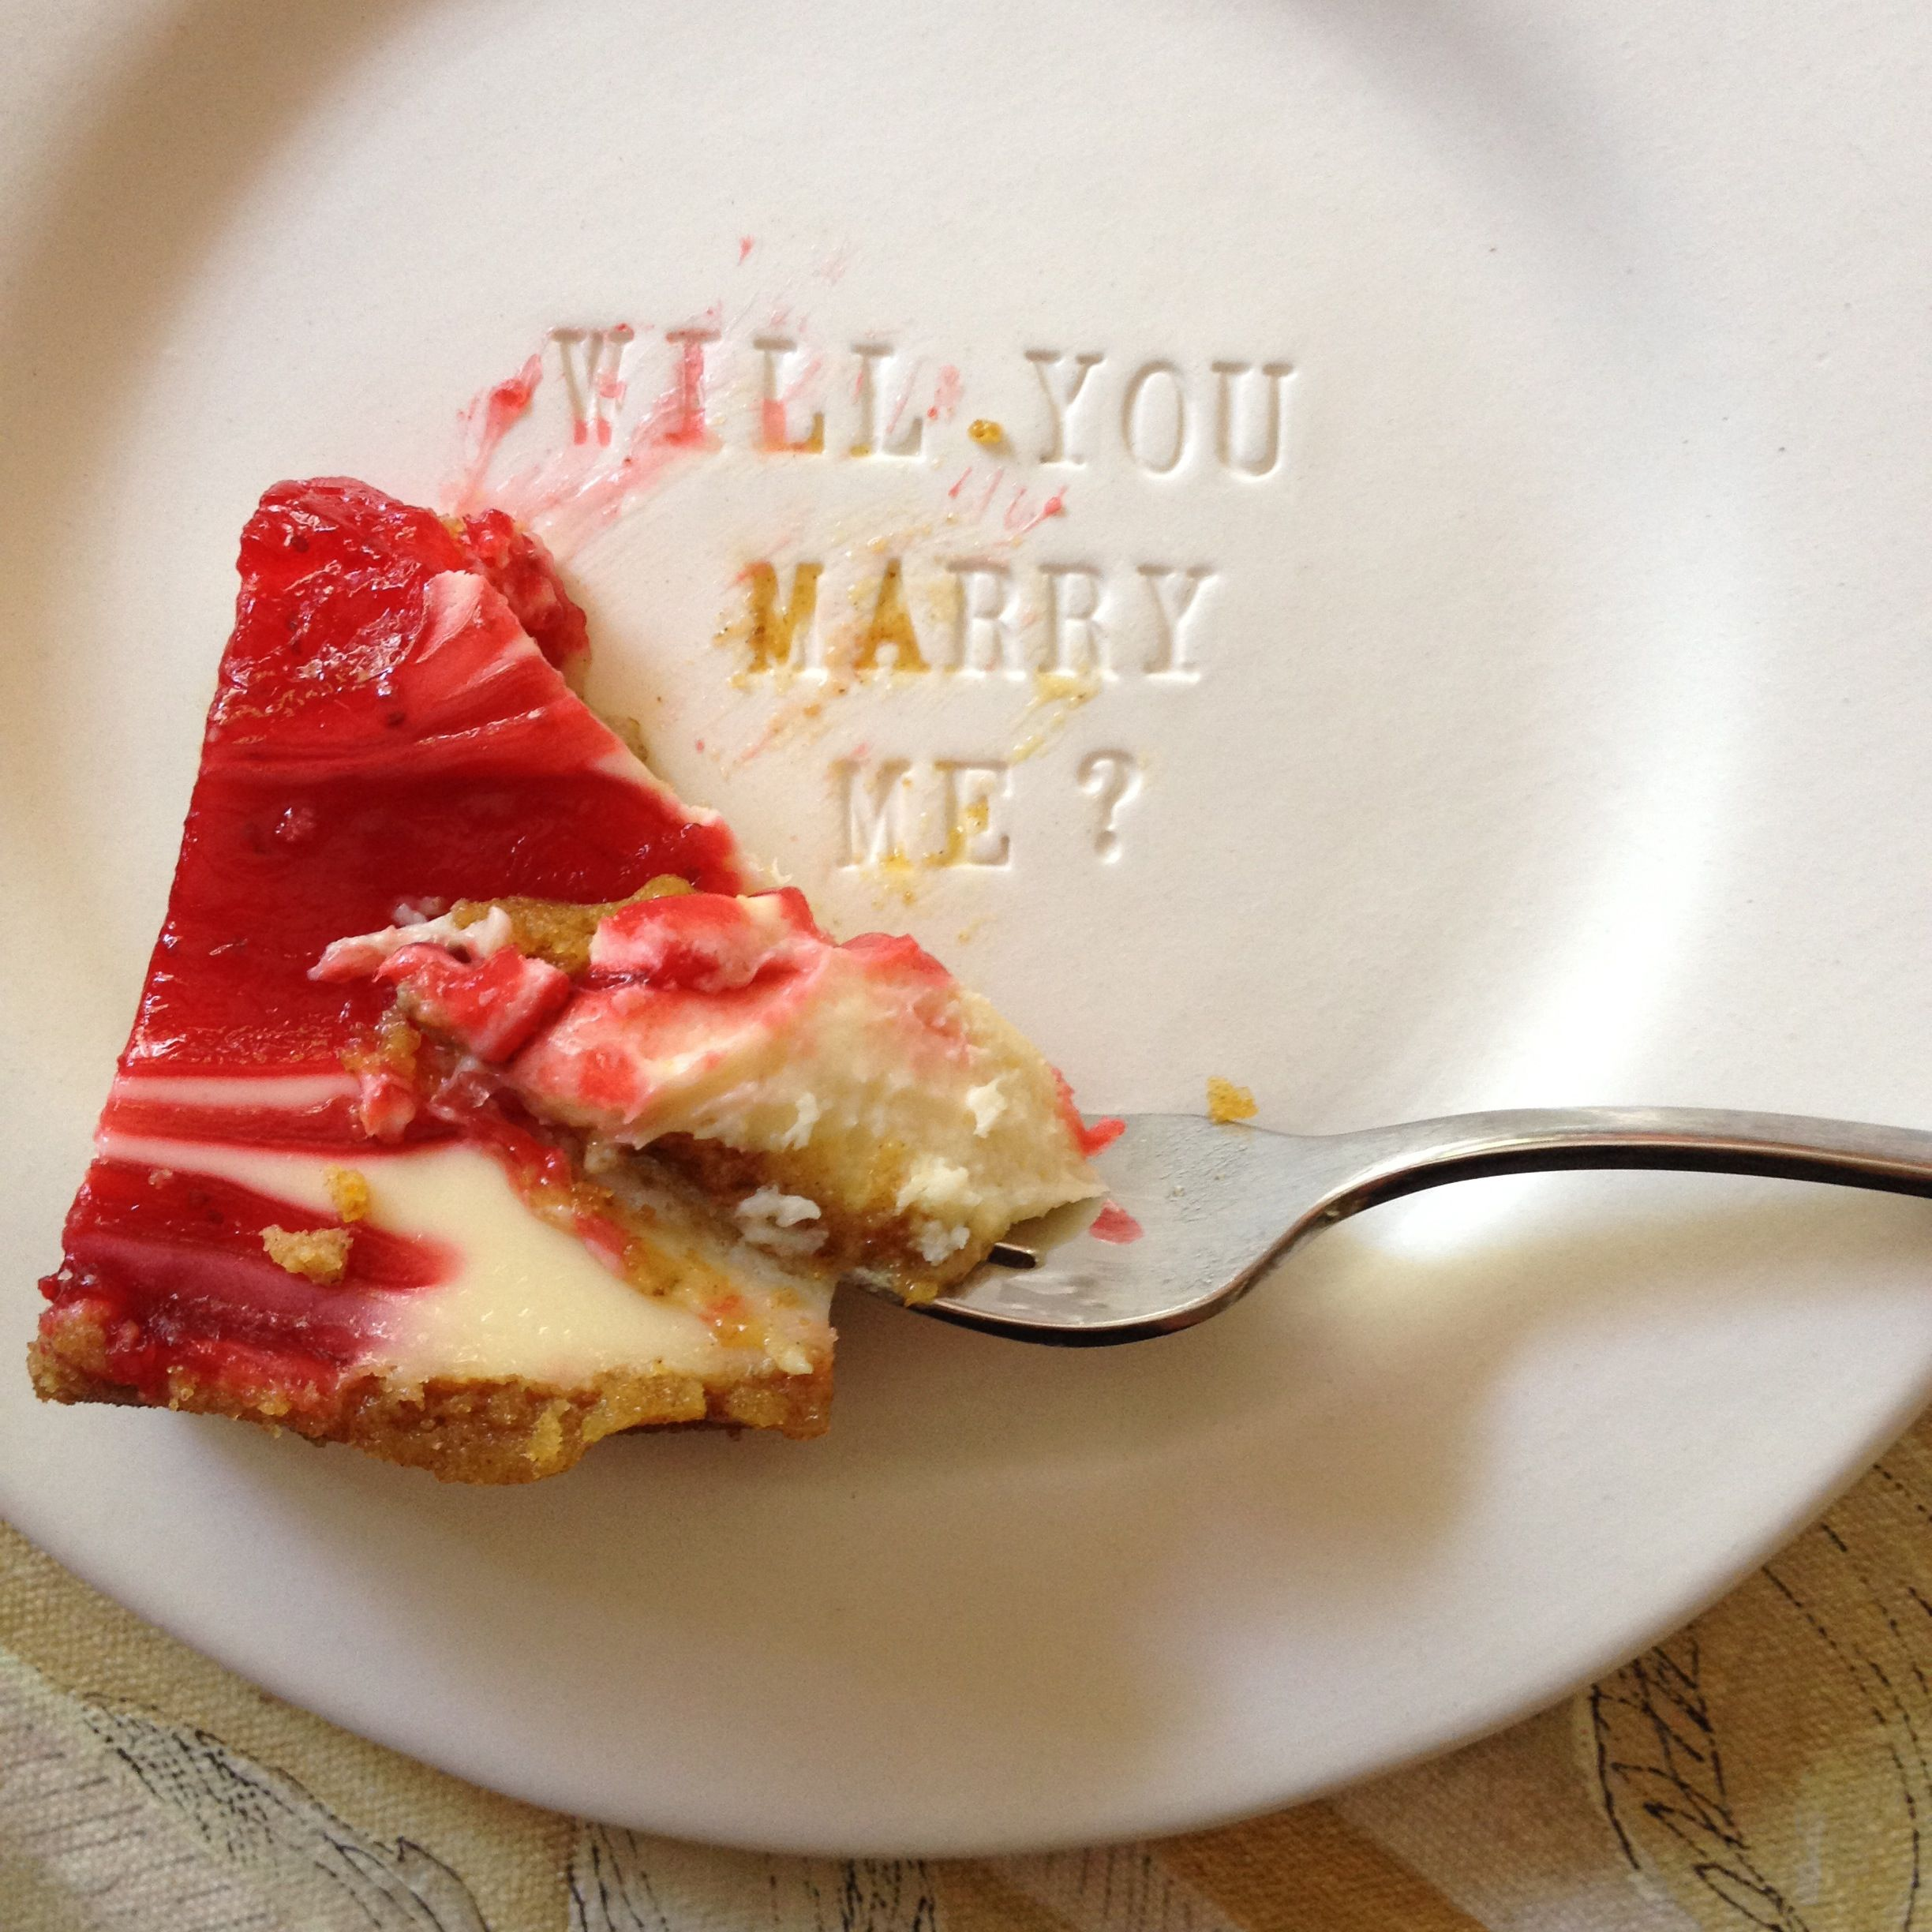 Favor Ideas Surprise Plate With Custom Message Would Be Such A Cute Way To Propose